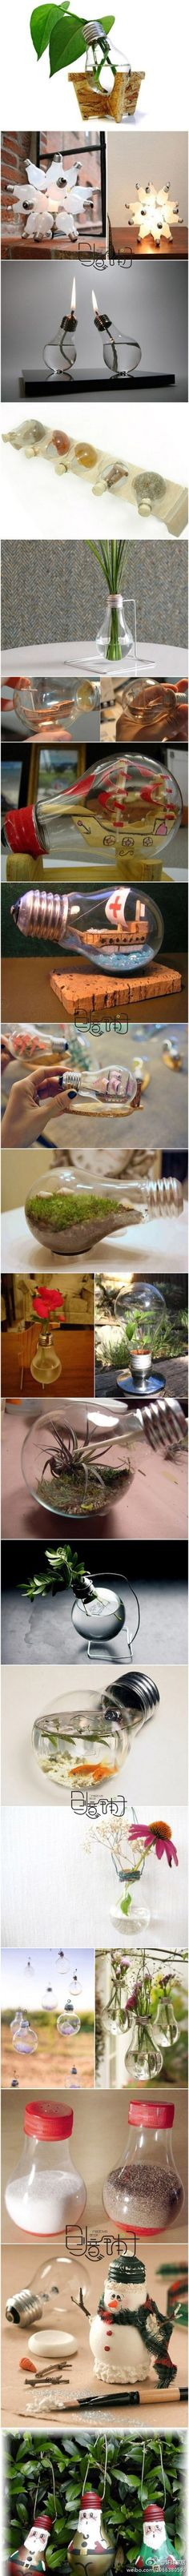 Things to do with light bulbs!